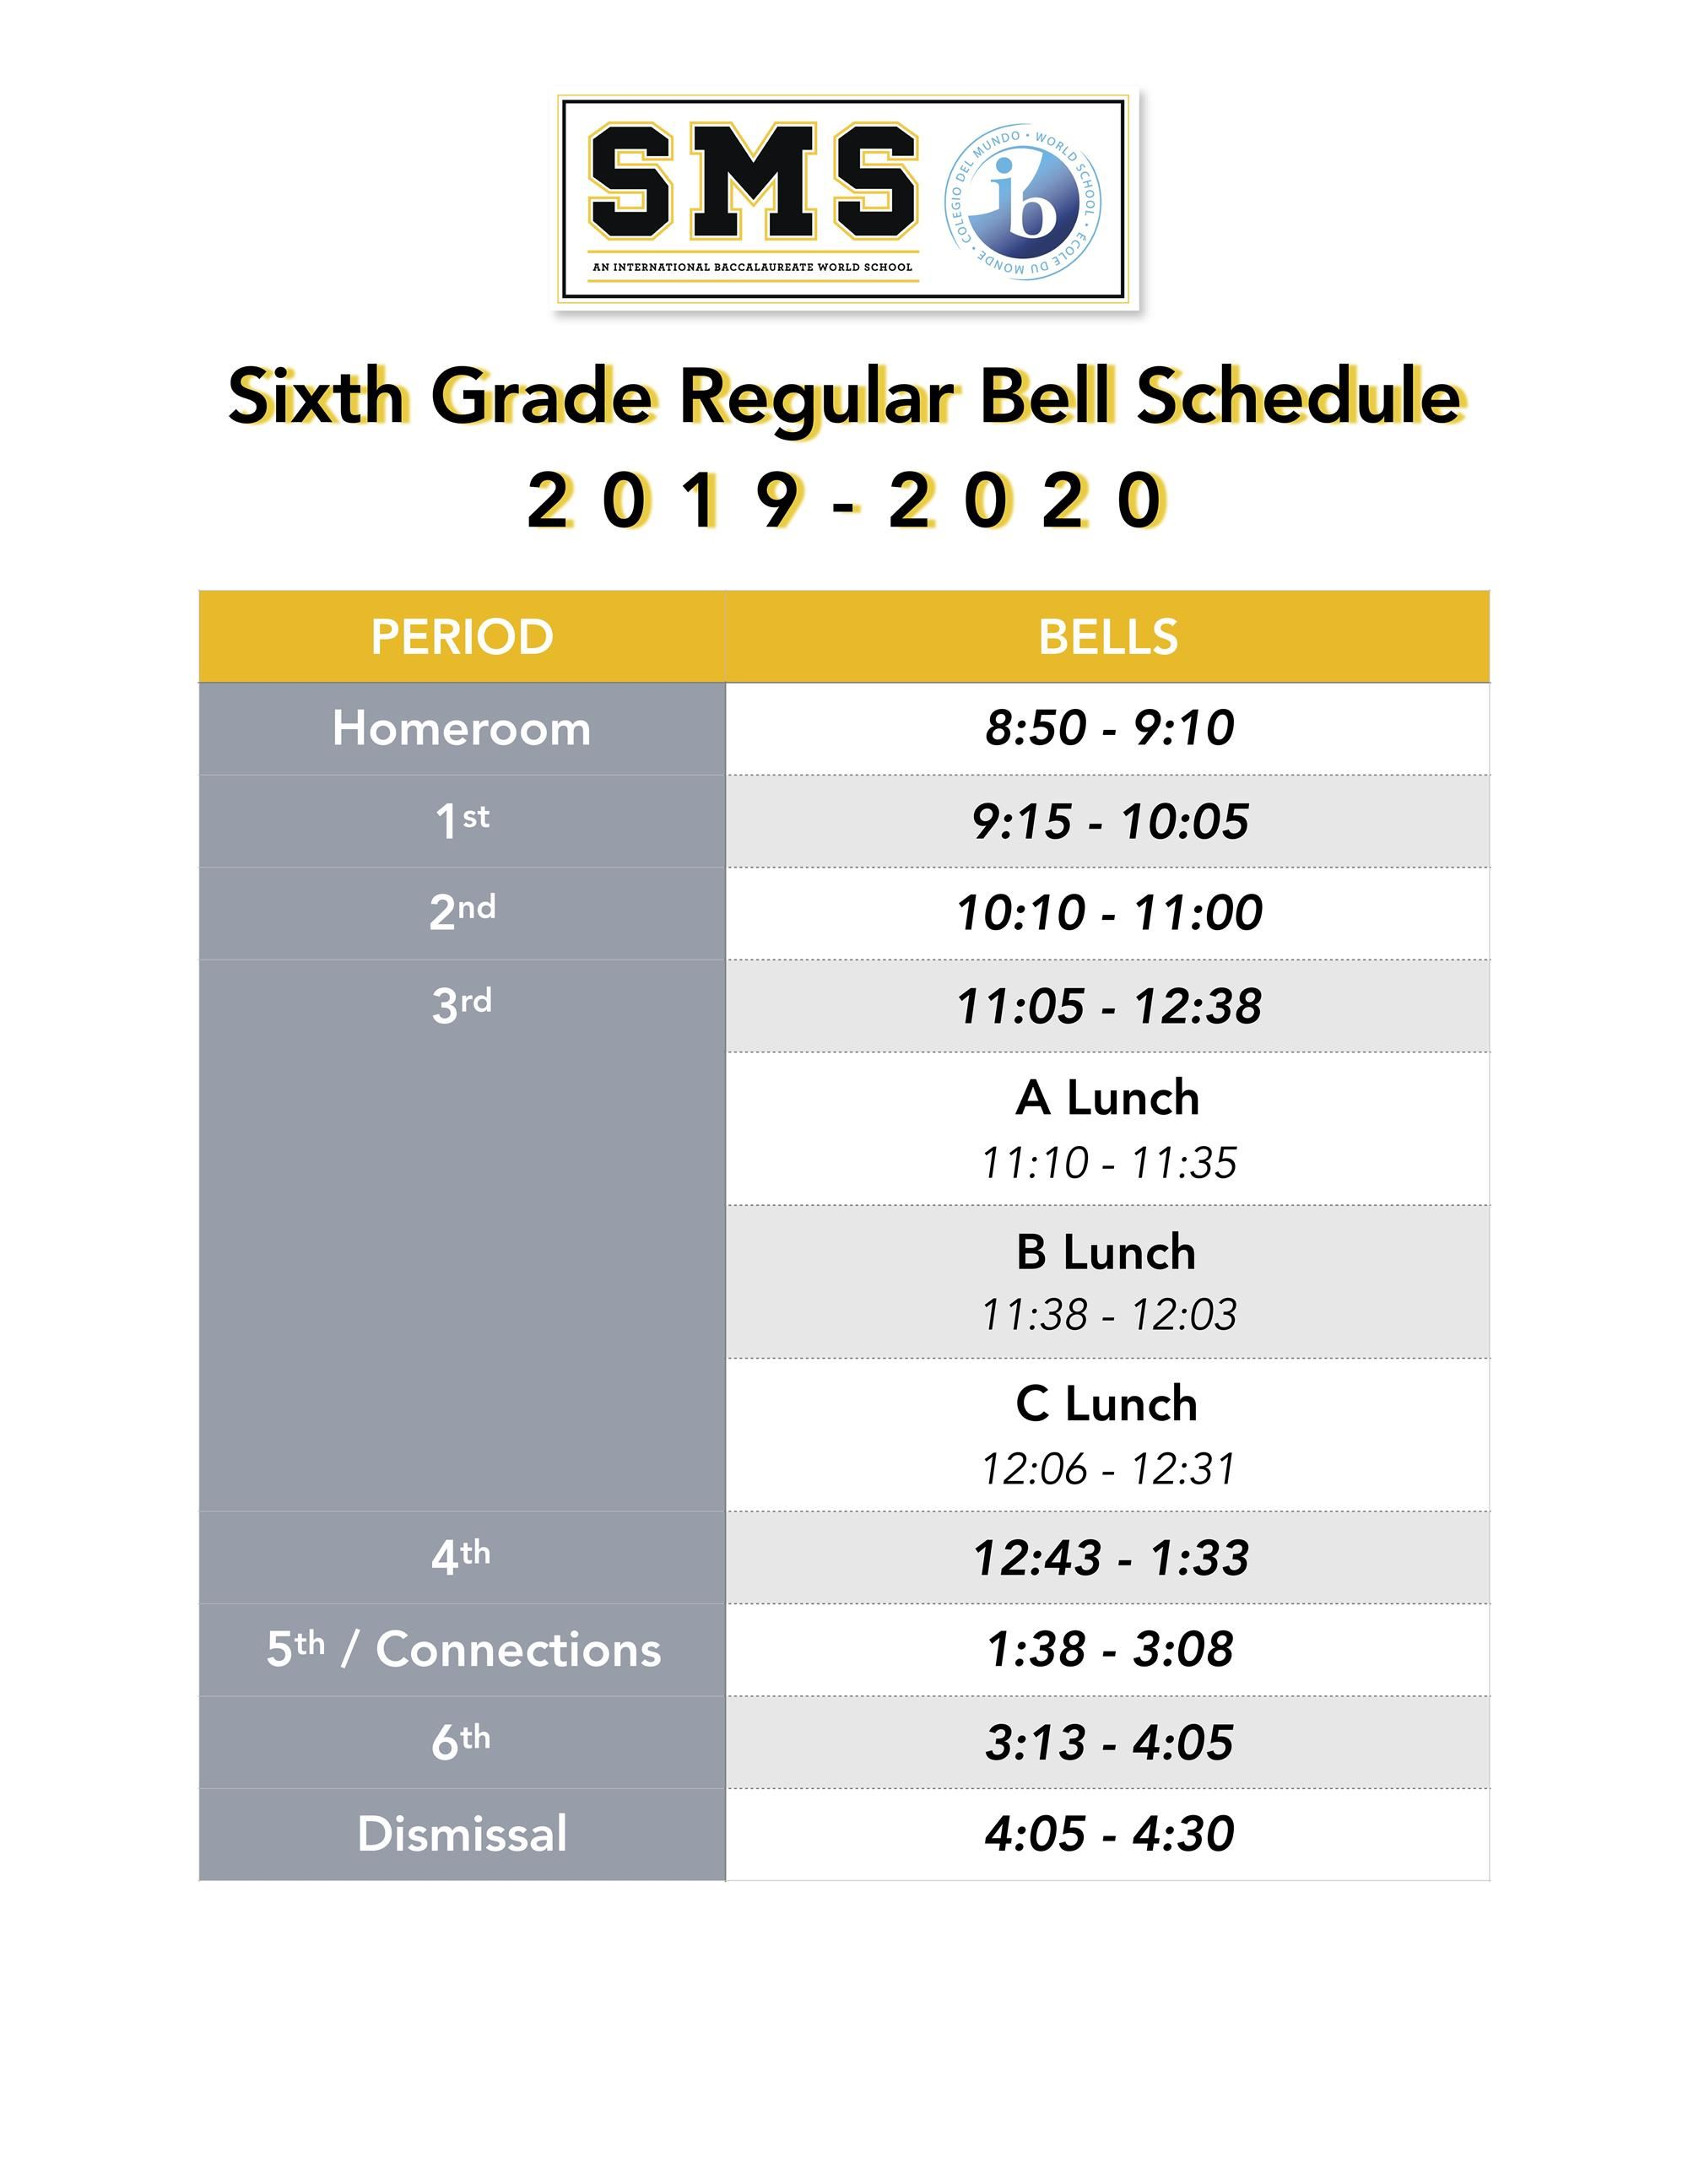 6th grade regular bells, please contact main office for more info 404-802-5650